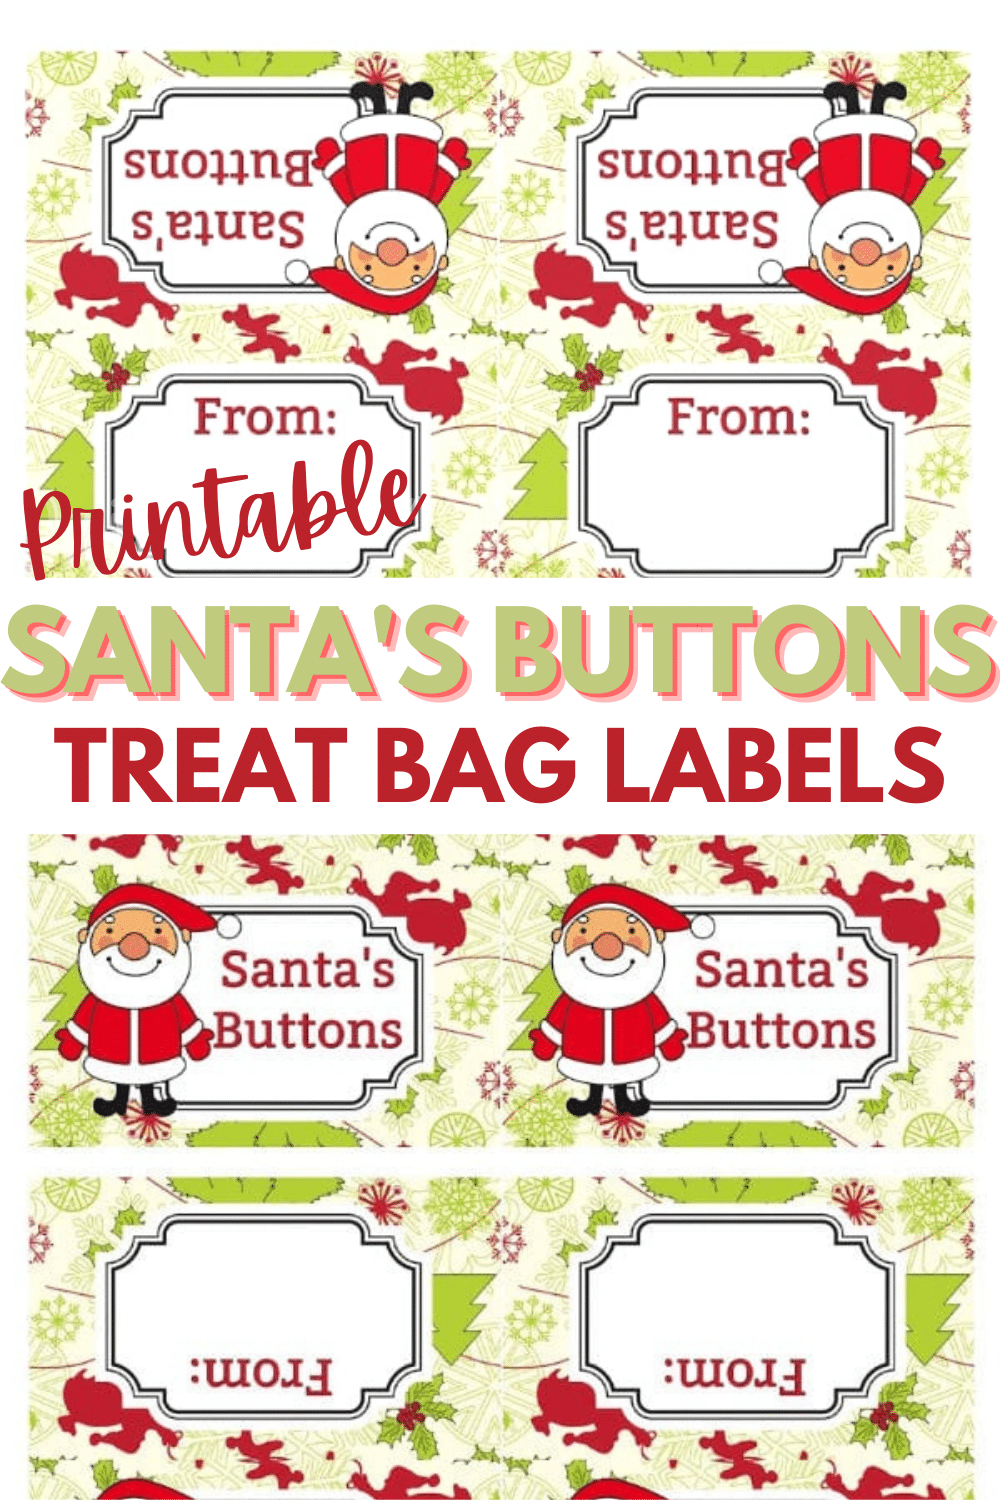 These adorable Santa's Buttons Treat Bags are so easy to make with my printable treat bag toppers. A great gift idea for class parties during the holidays. #treatbags #Christmas #printables via @wondermomwannab